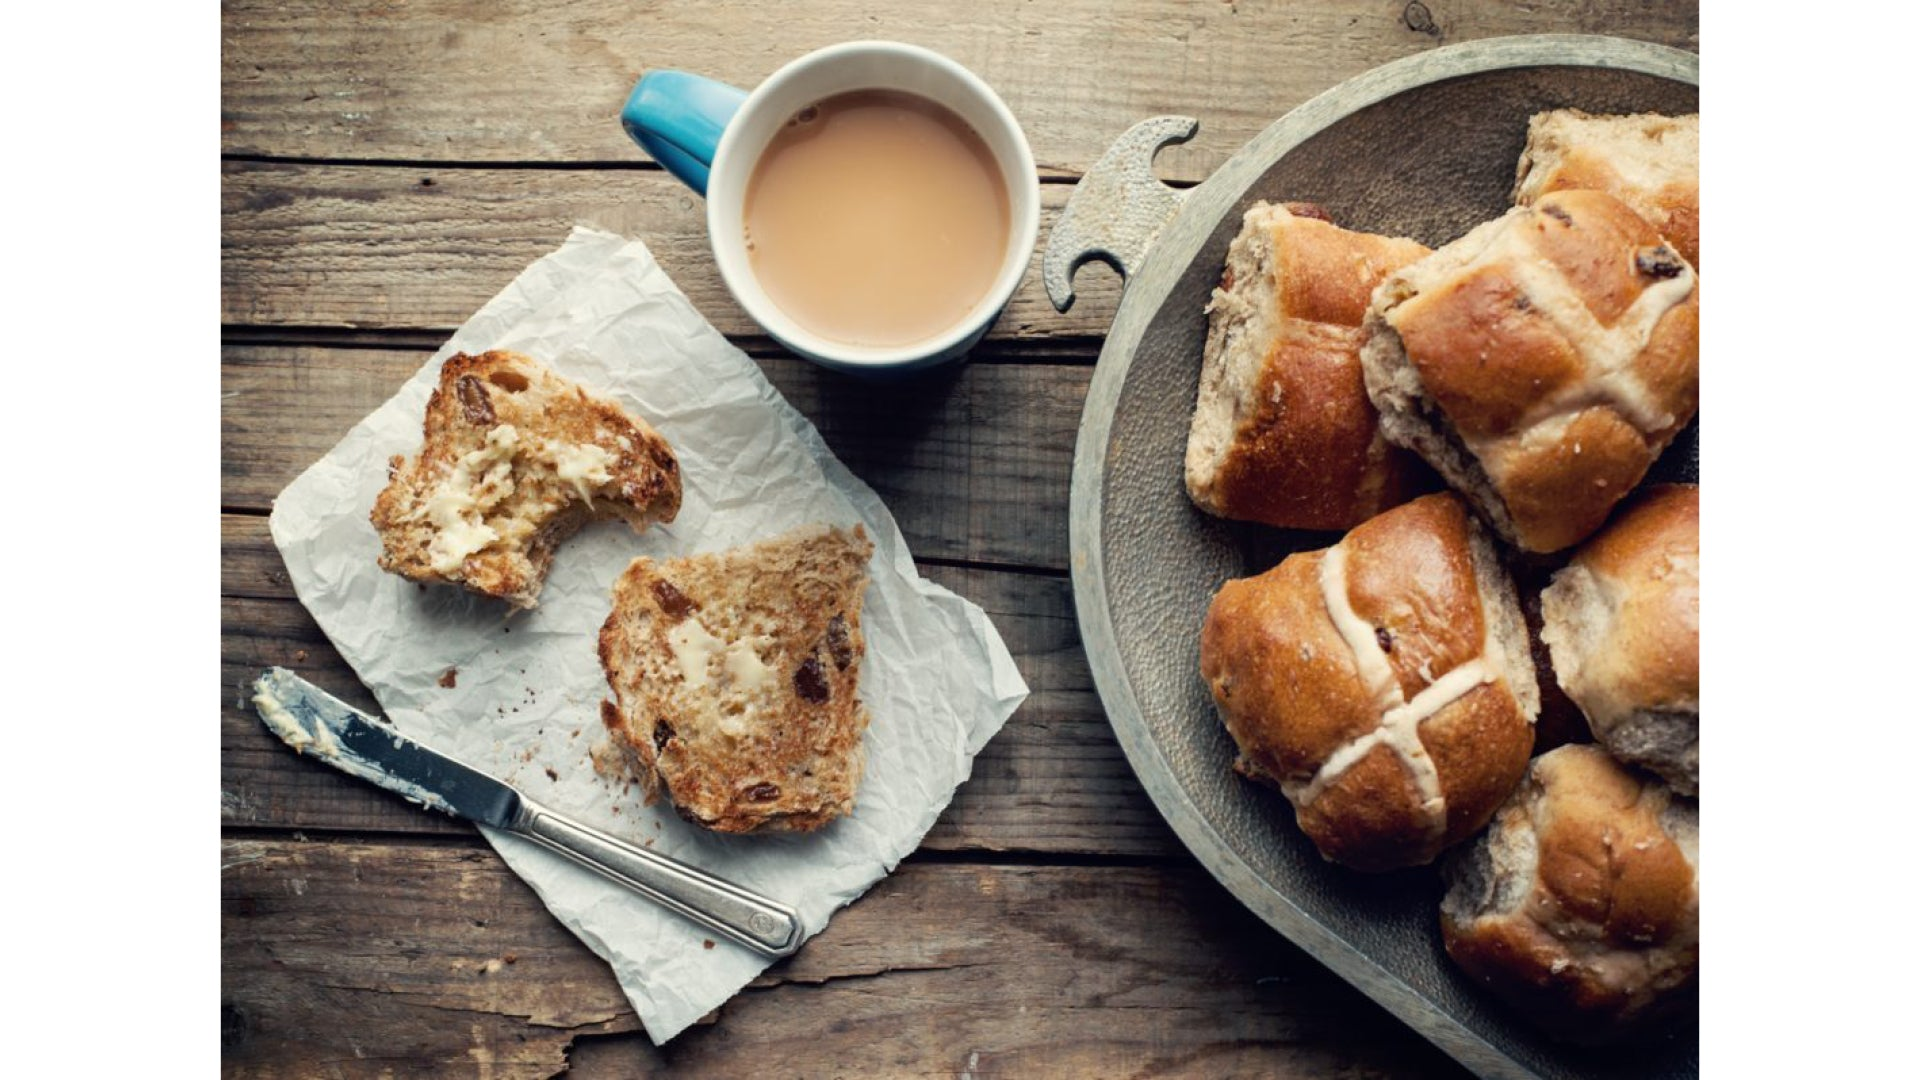 Image of hot cross buns on a wooden table. One has been buttered, with a knife placed beside it. A cup of tea sits next to it.